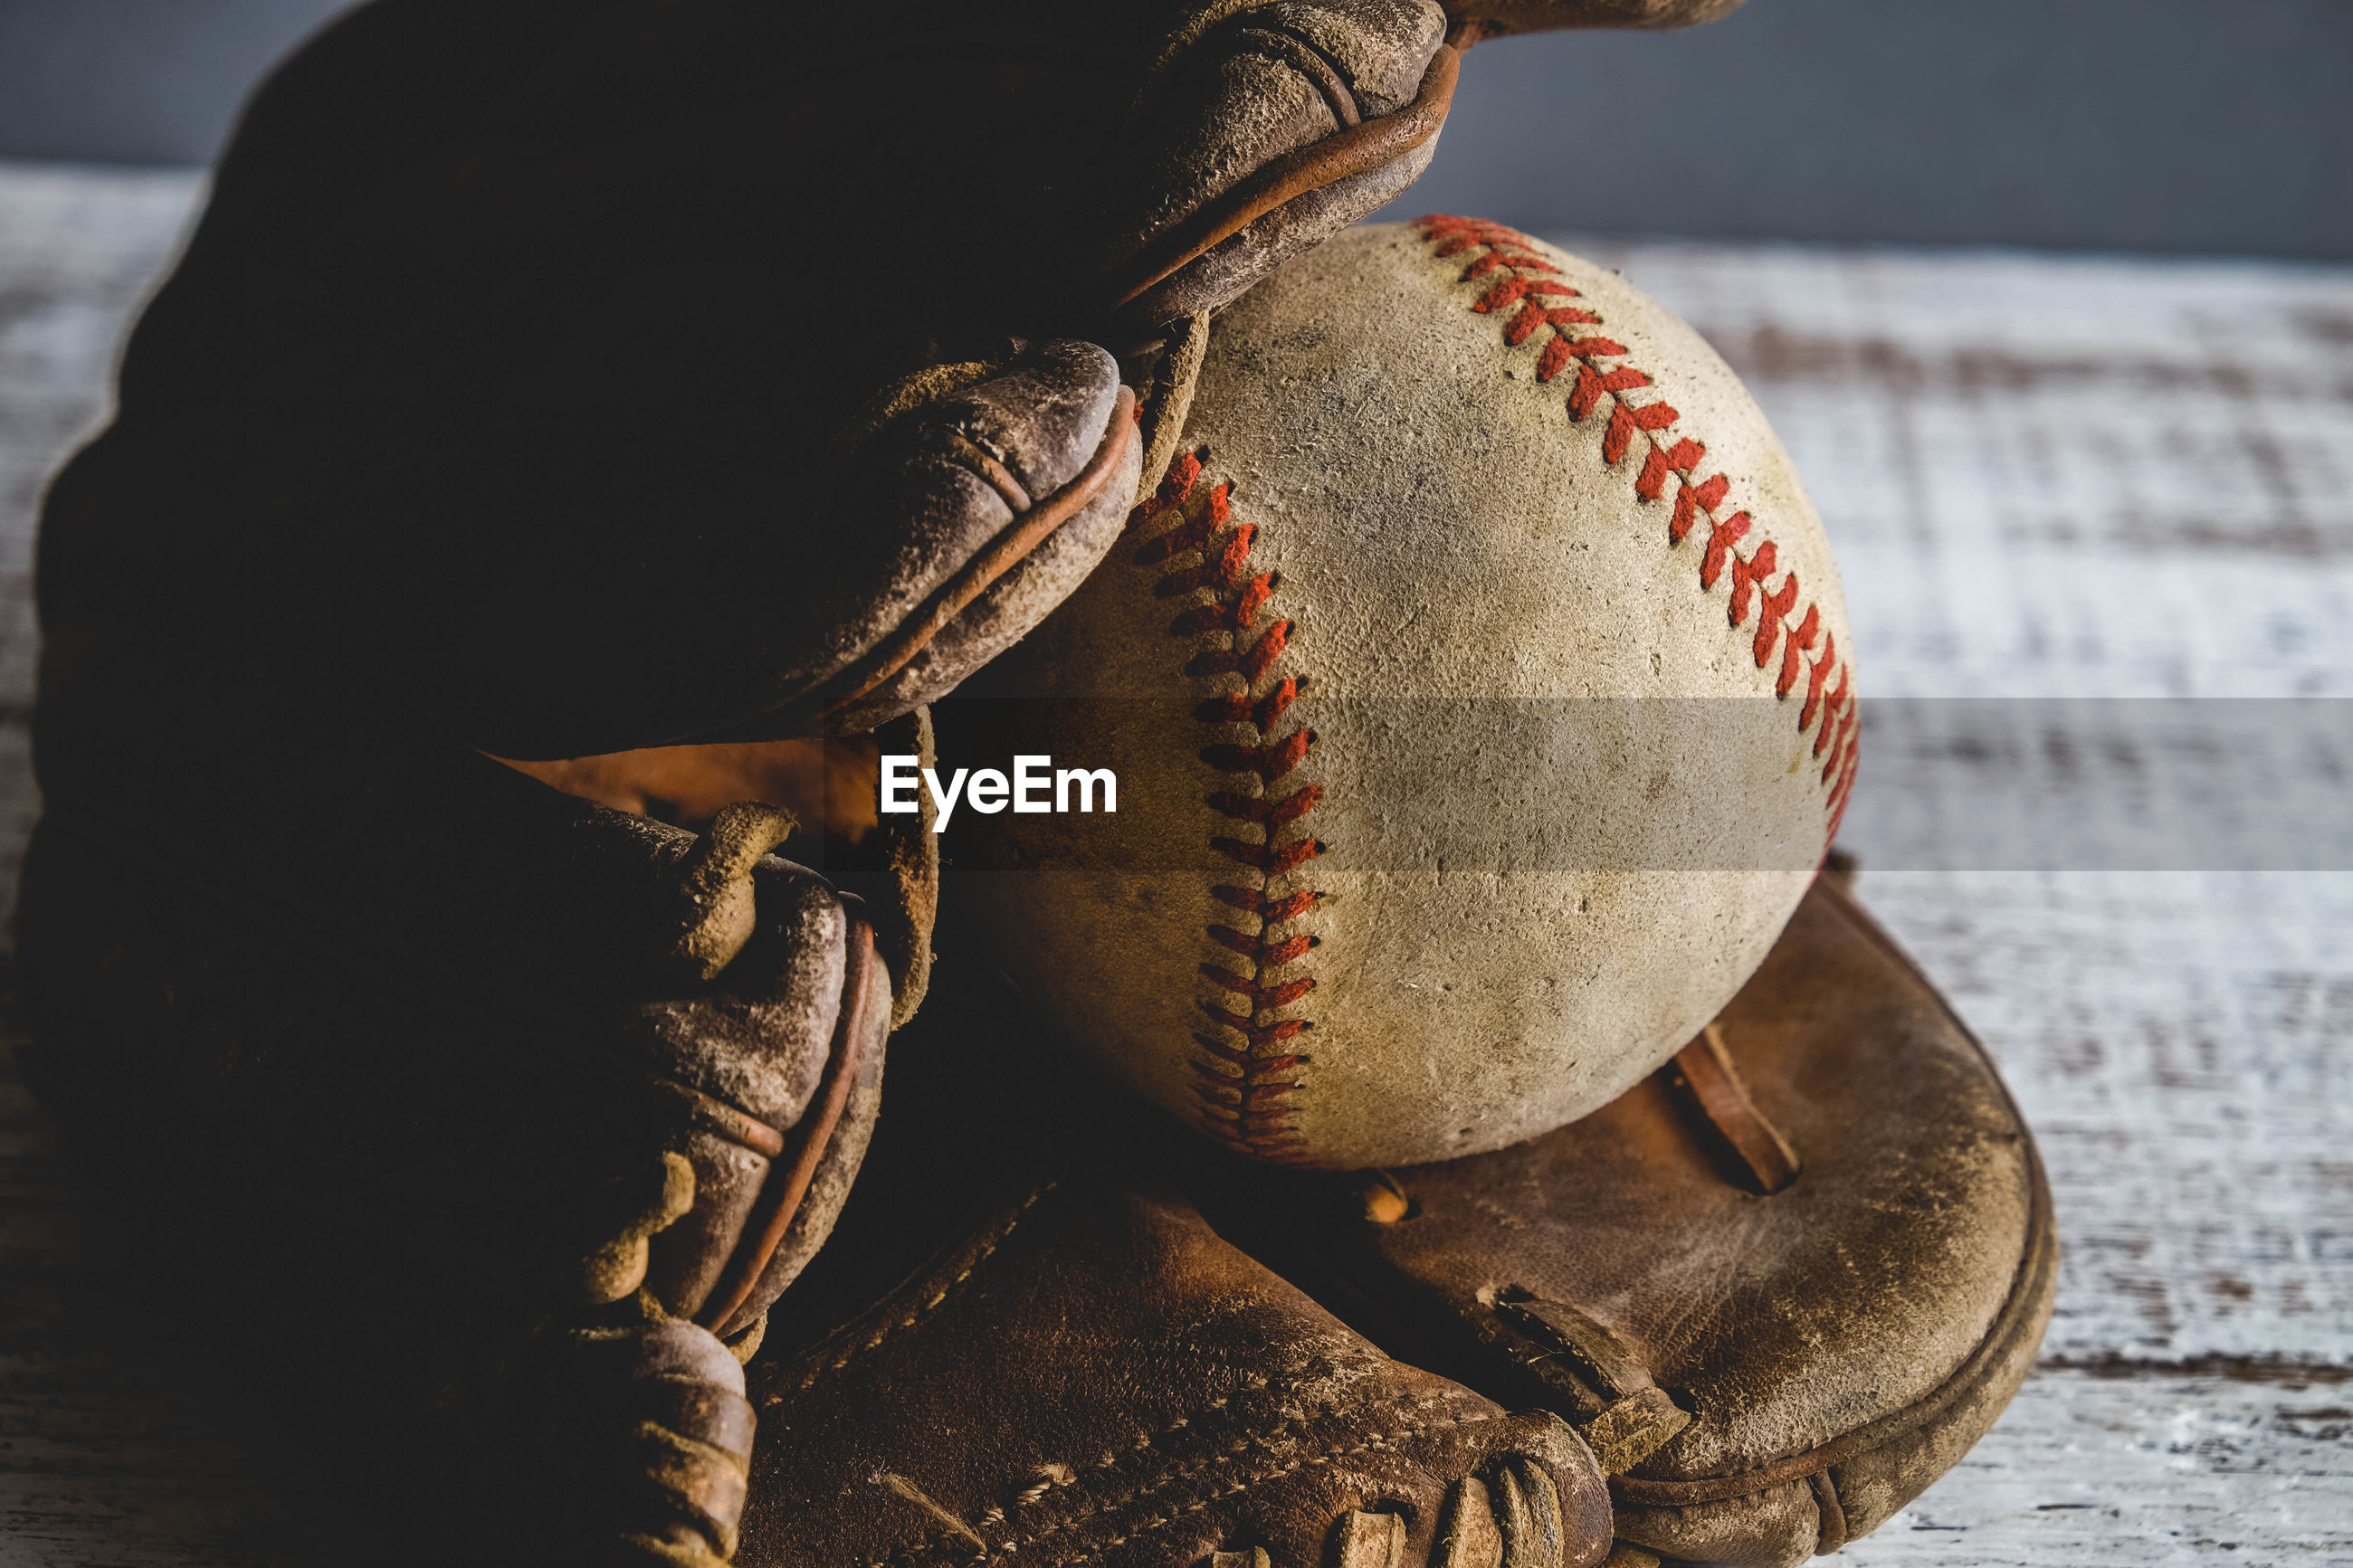 Close-up of baseball gloves and ball on table